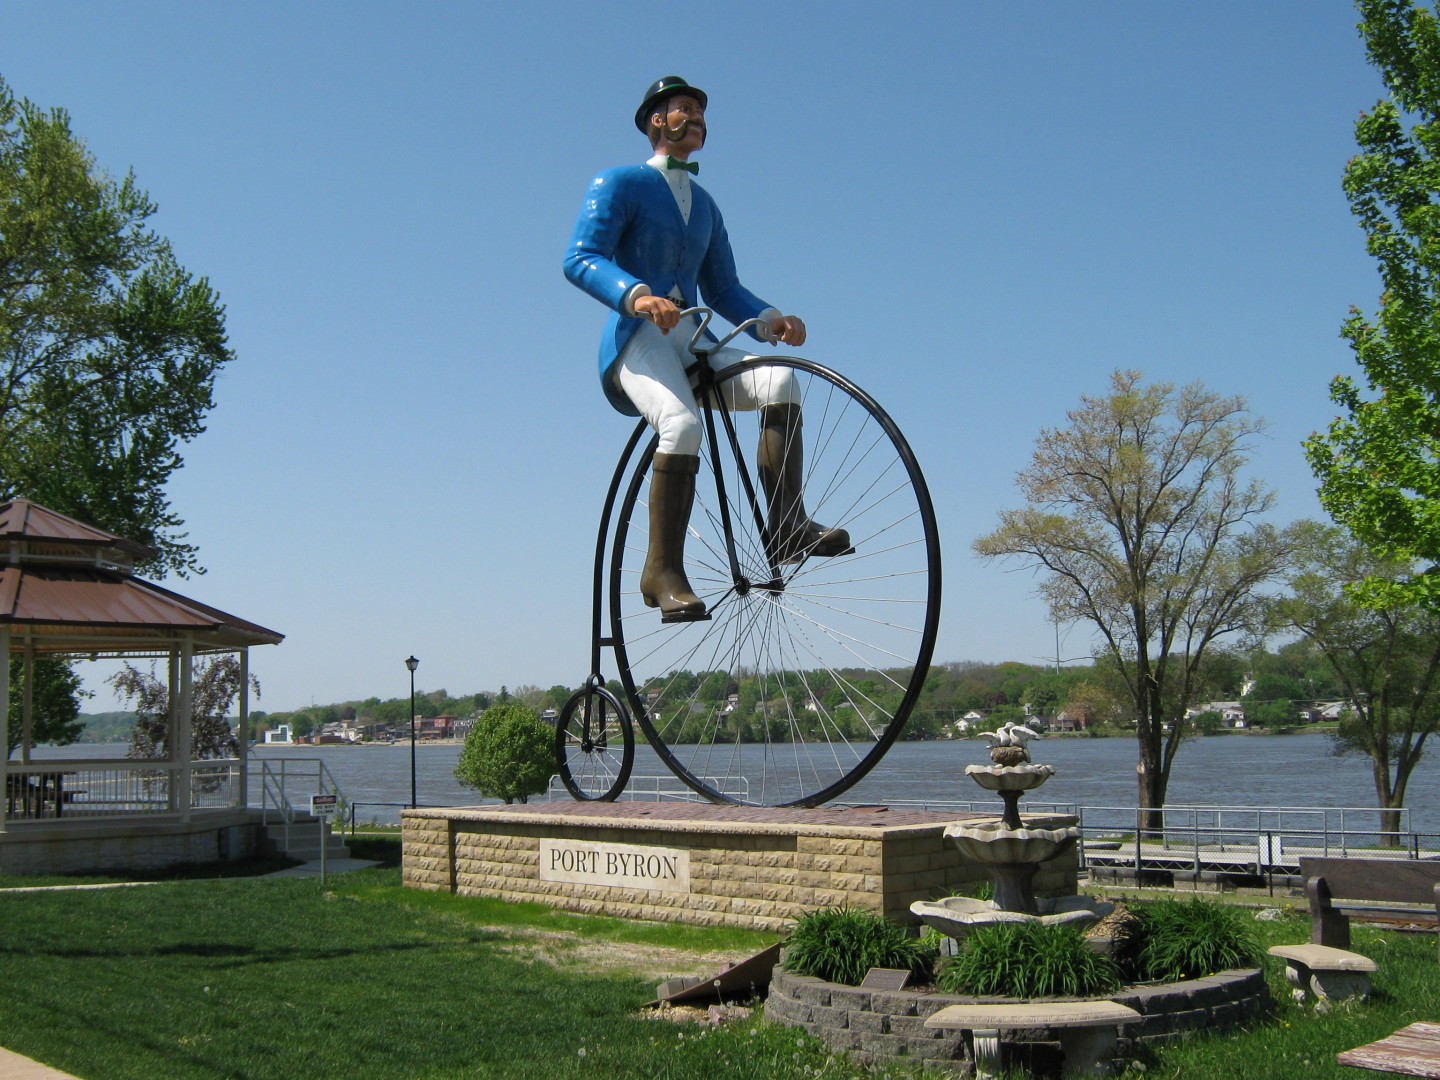 Will B. Rolling Statue in Port Byron IL.